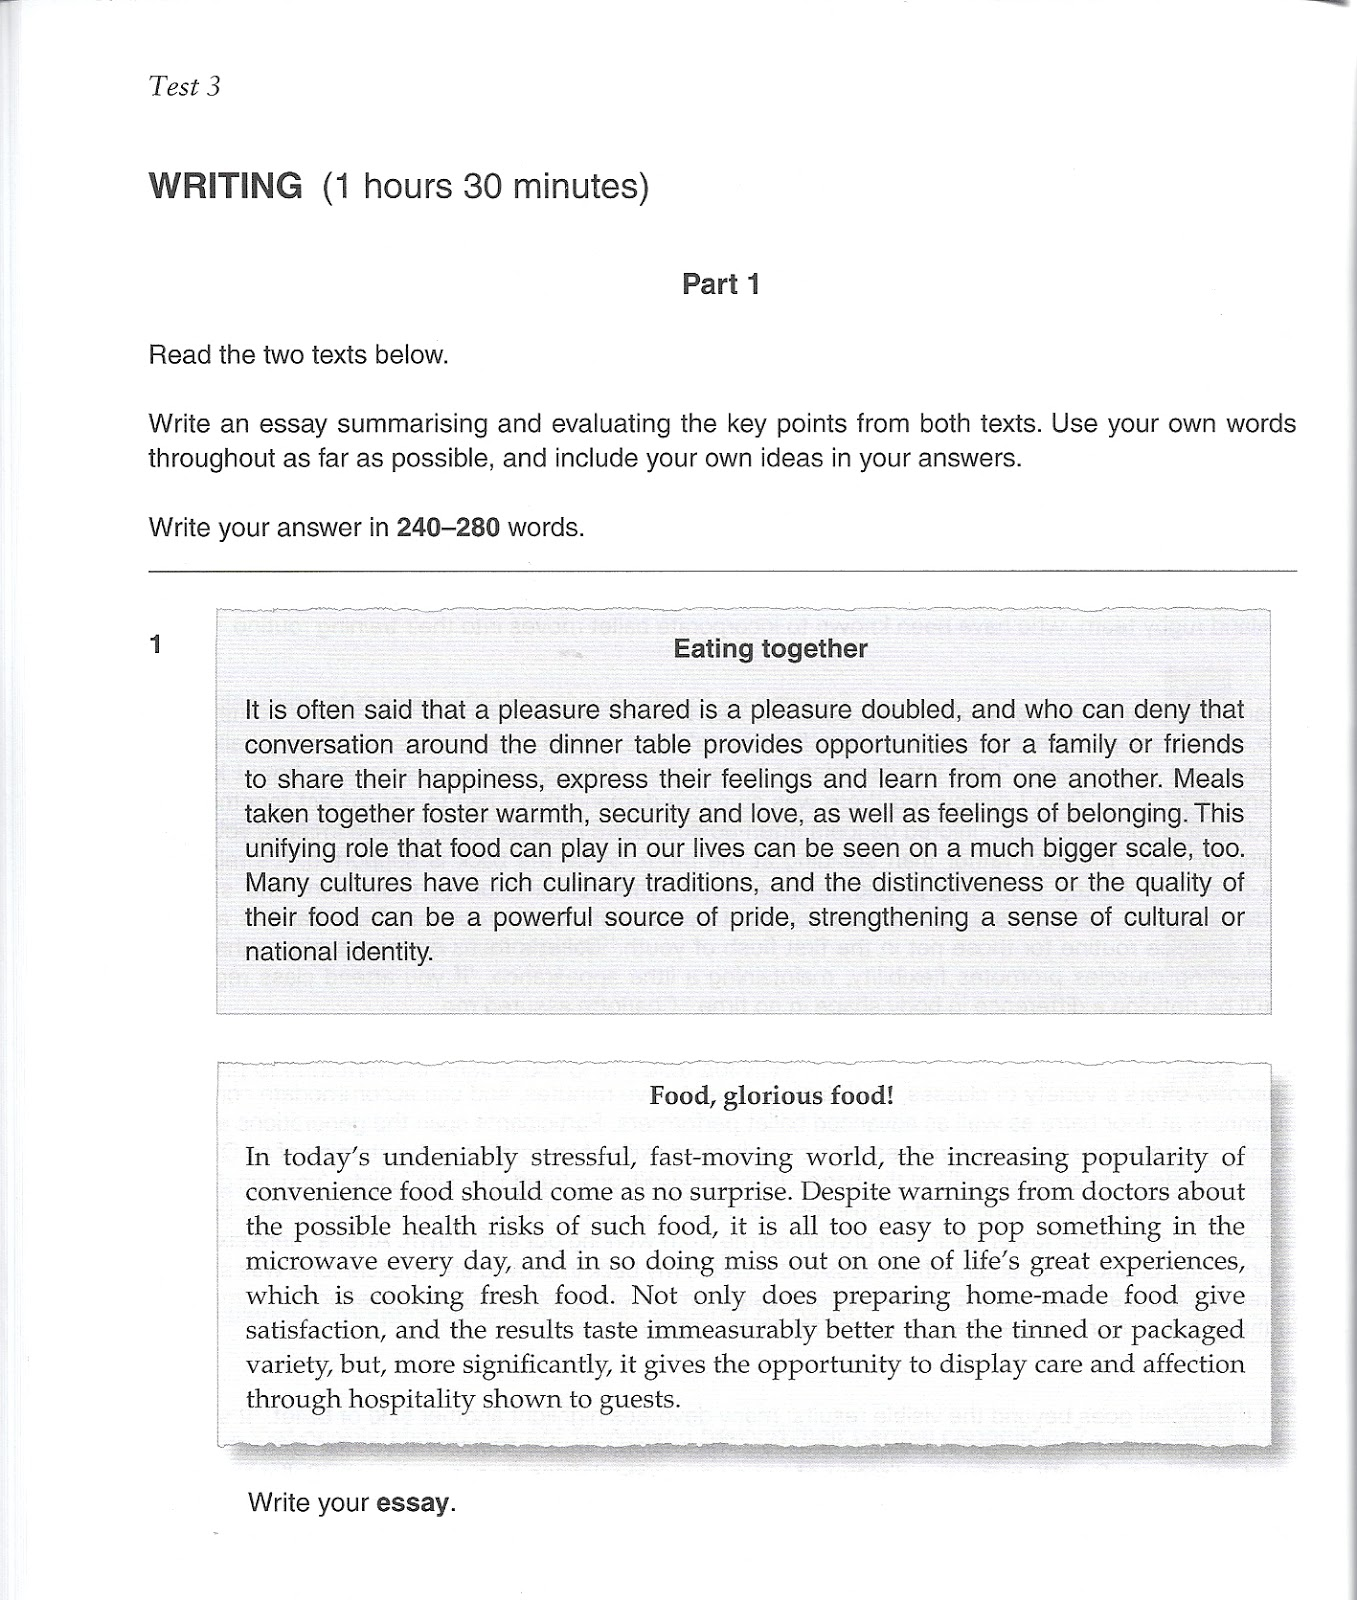 essay task ielts essay task band cover letter writing experience  the benefits of learning english essay the benefits of learning the benefits of learning english essaybenefits